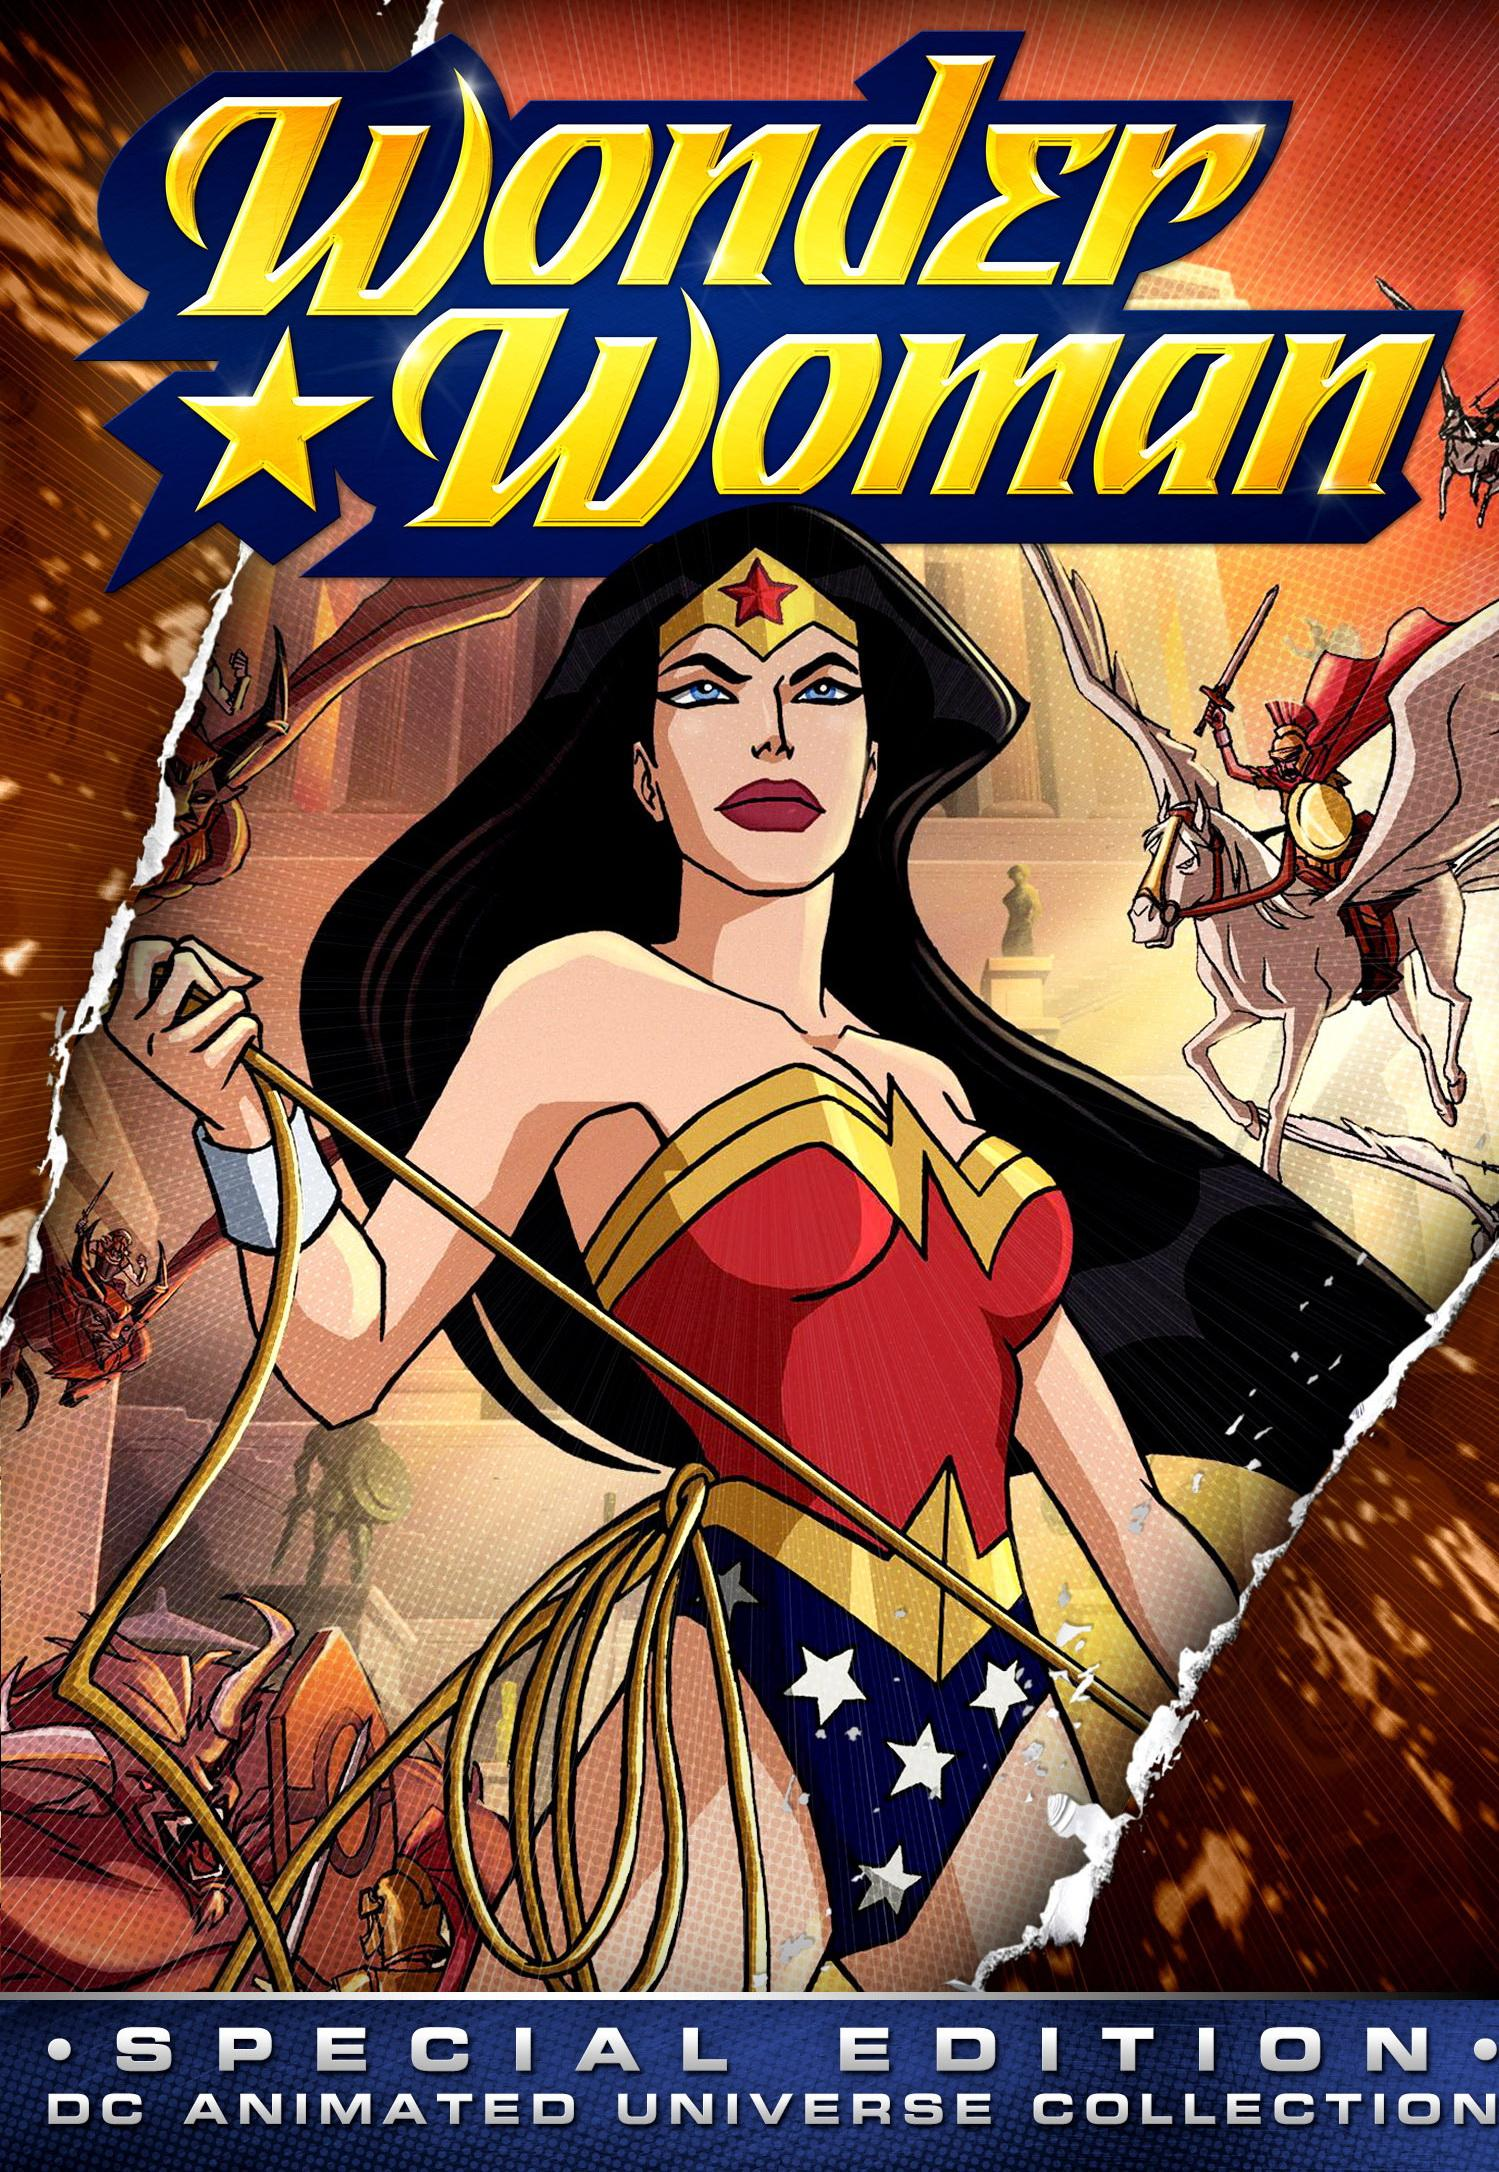 cover of 2009 wonder woman movie